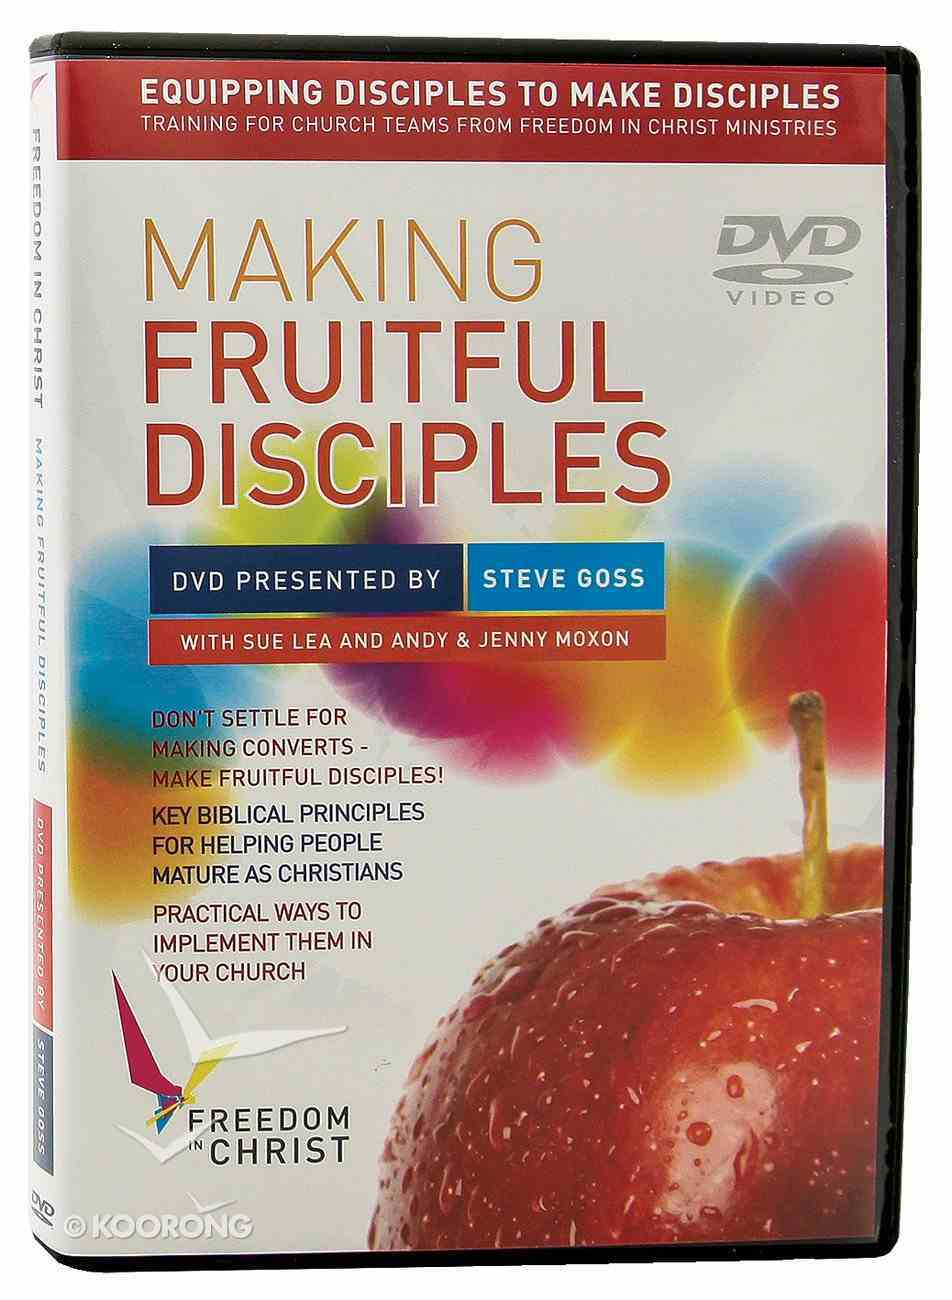 Making Fruitful Disciples DVD (Freedom In Christ Course) DVD